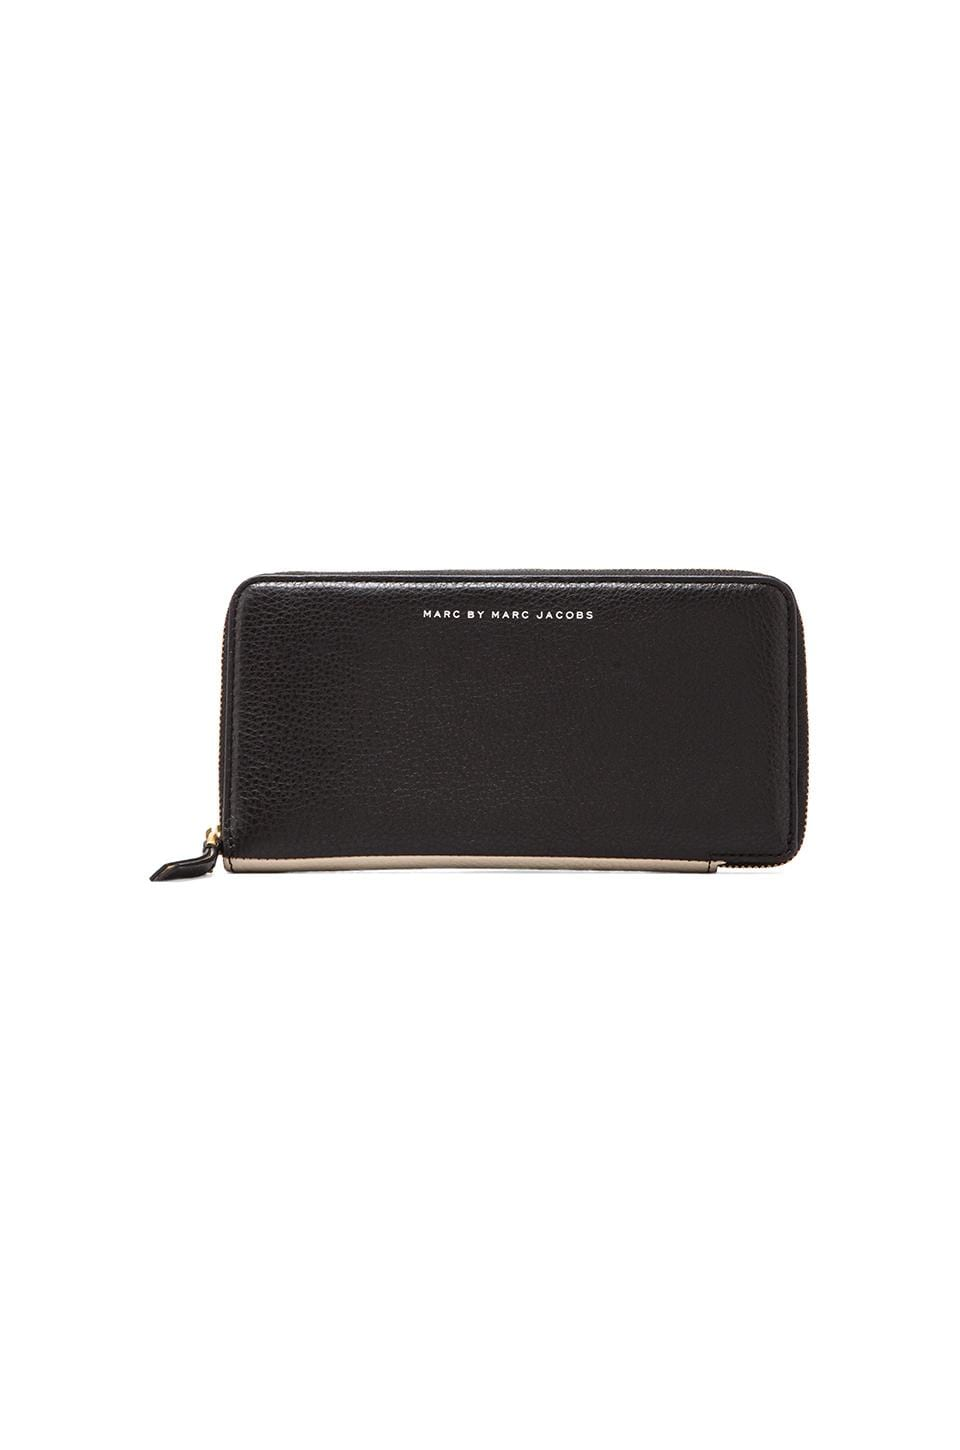 Marc by Marc Jacobs Sophisticato Slim Zippy in Black Multi